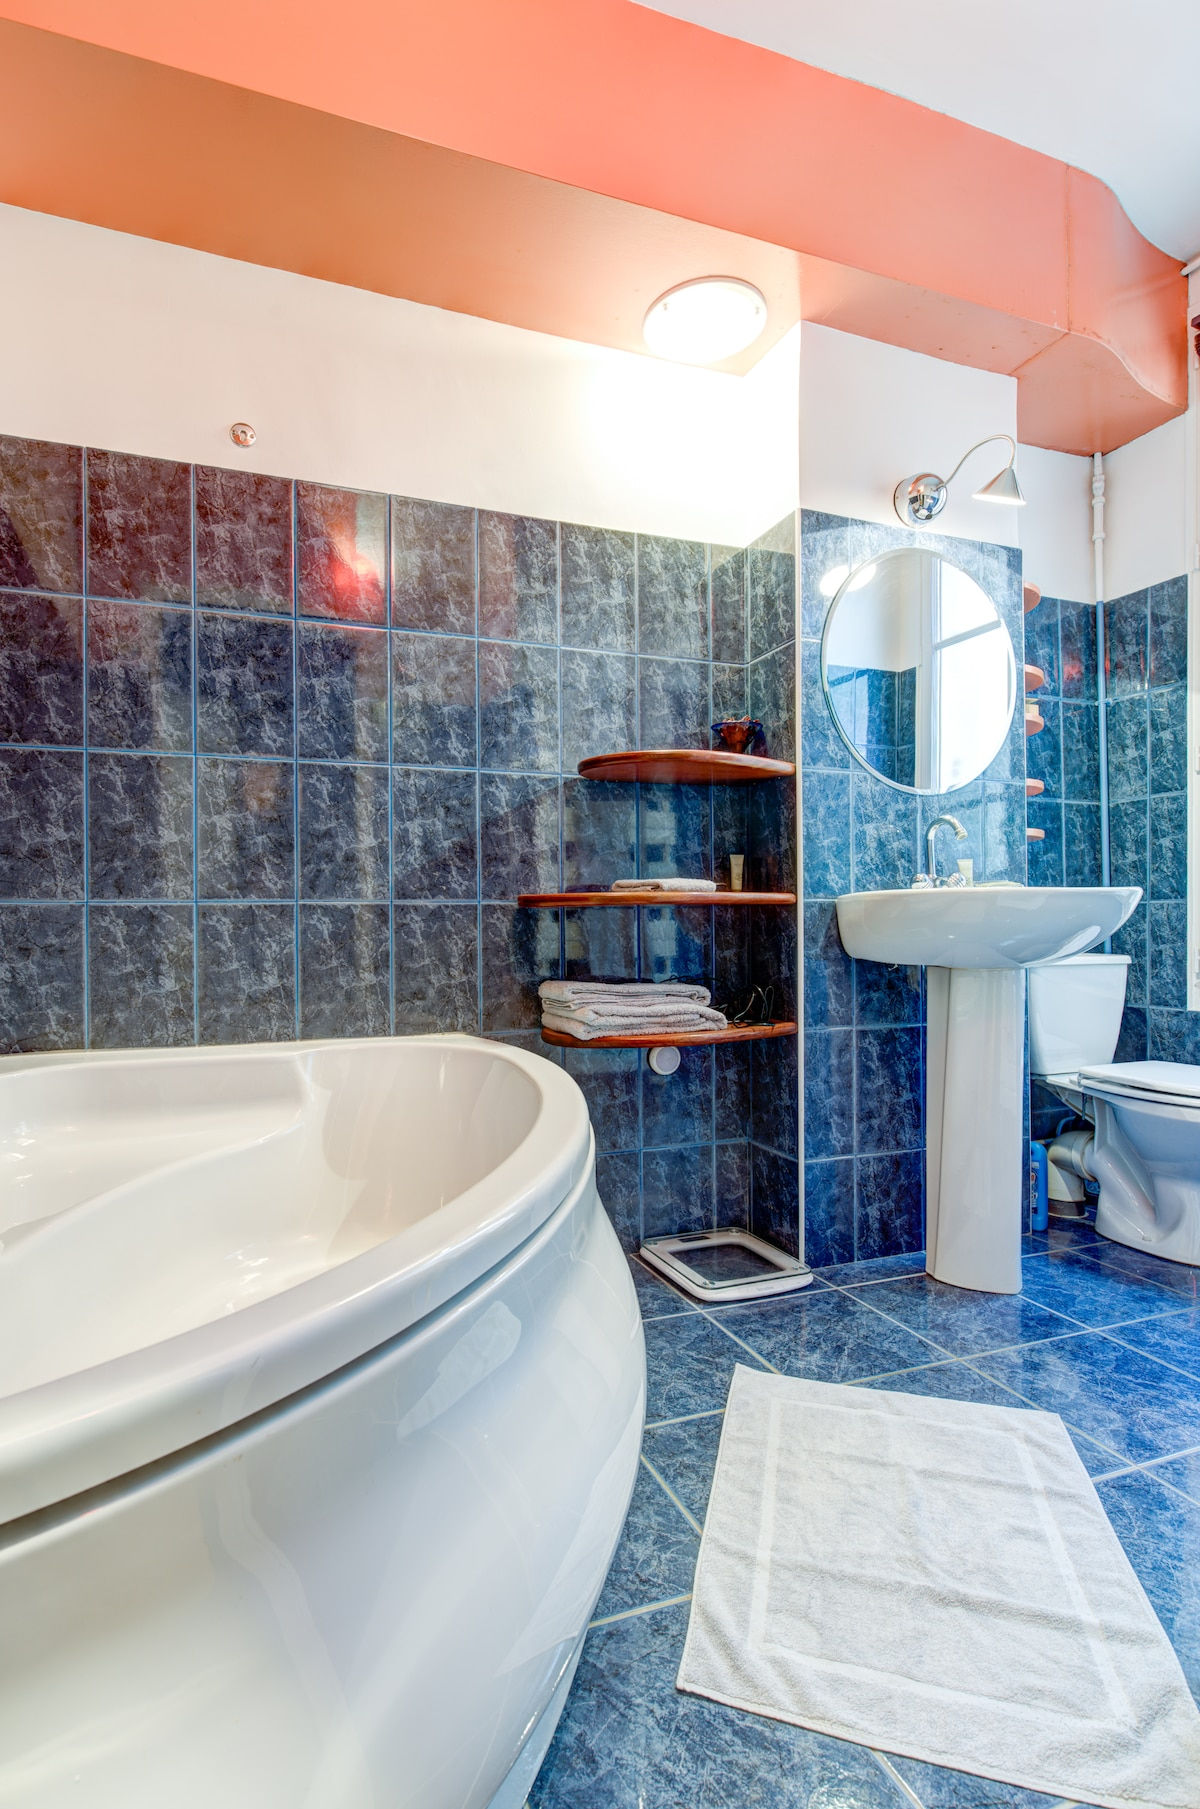 The bathroom, offering a very large bathtub, toilet and a sink to make yourself in good shape for a new walking day in Paris